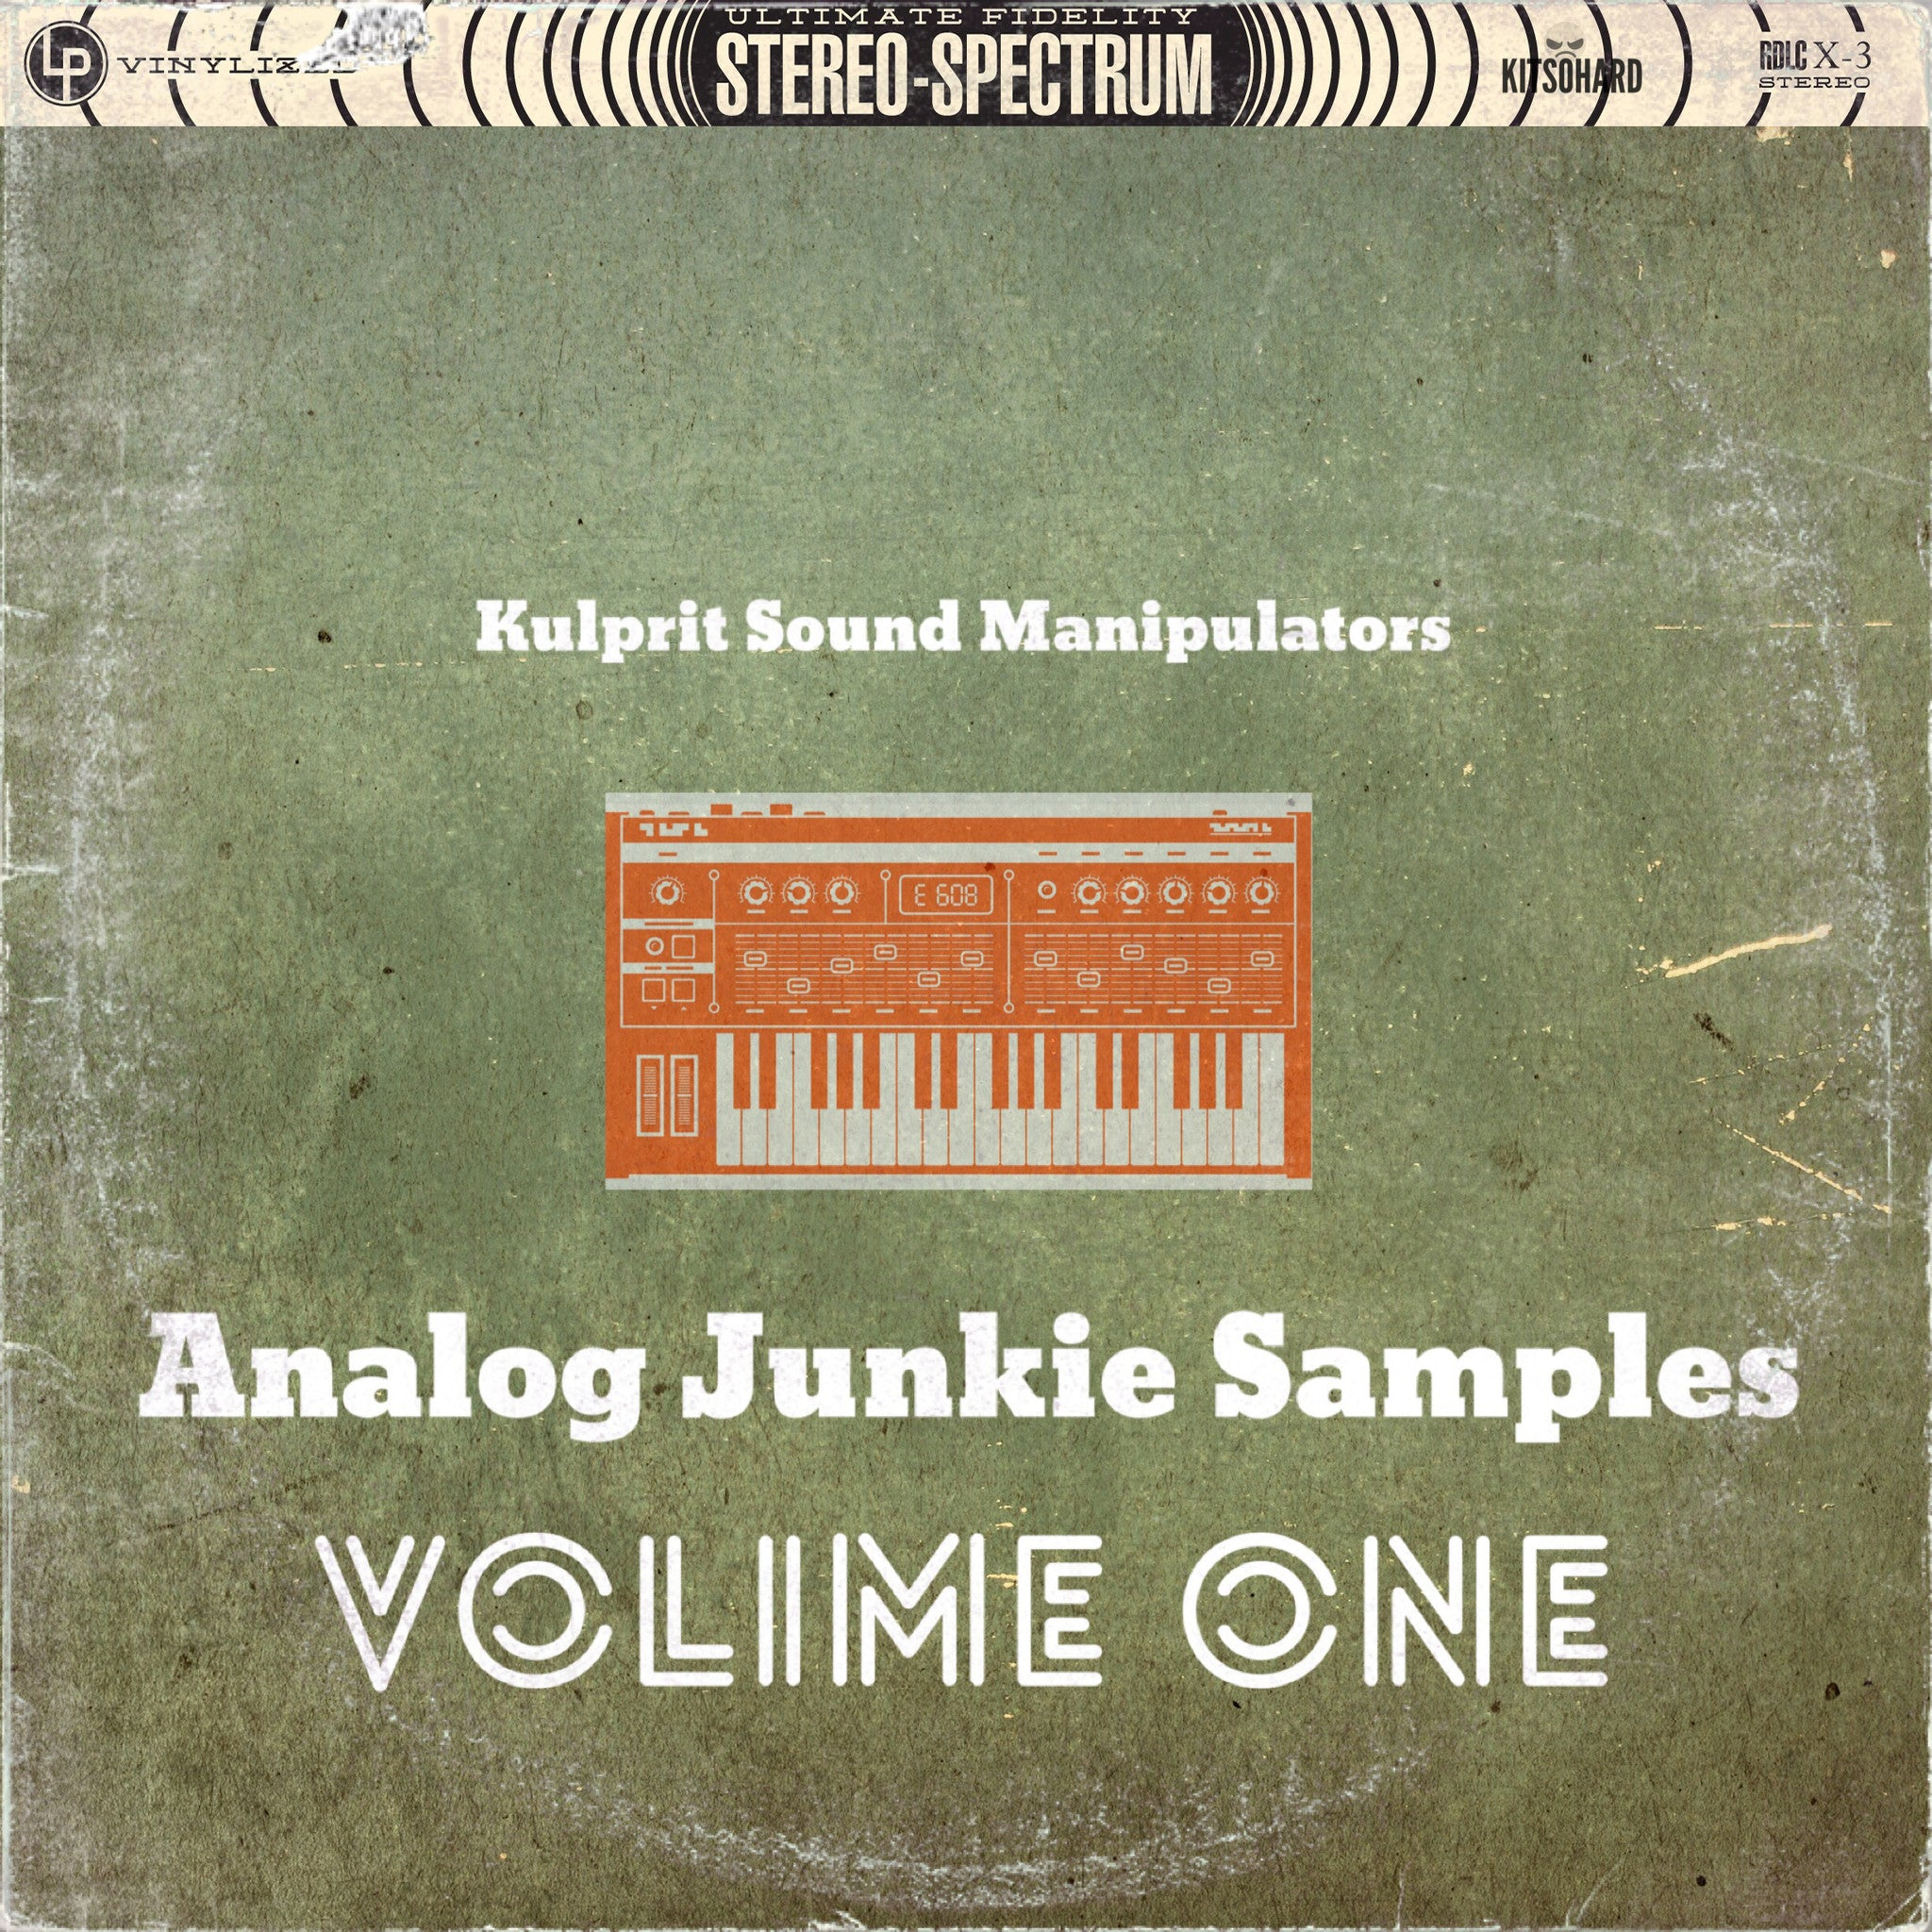 Analog Junkie Samples Volume 1